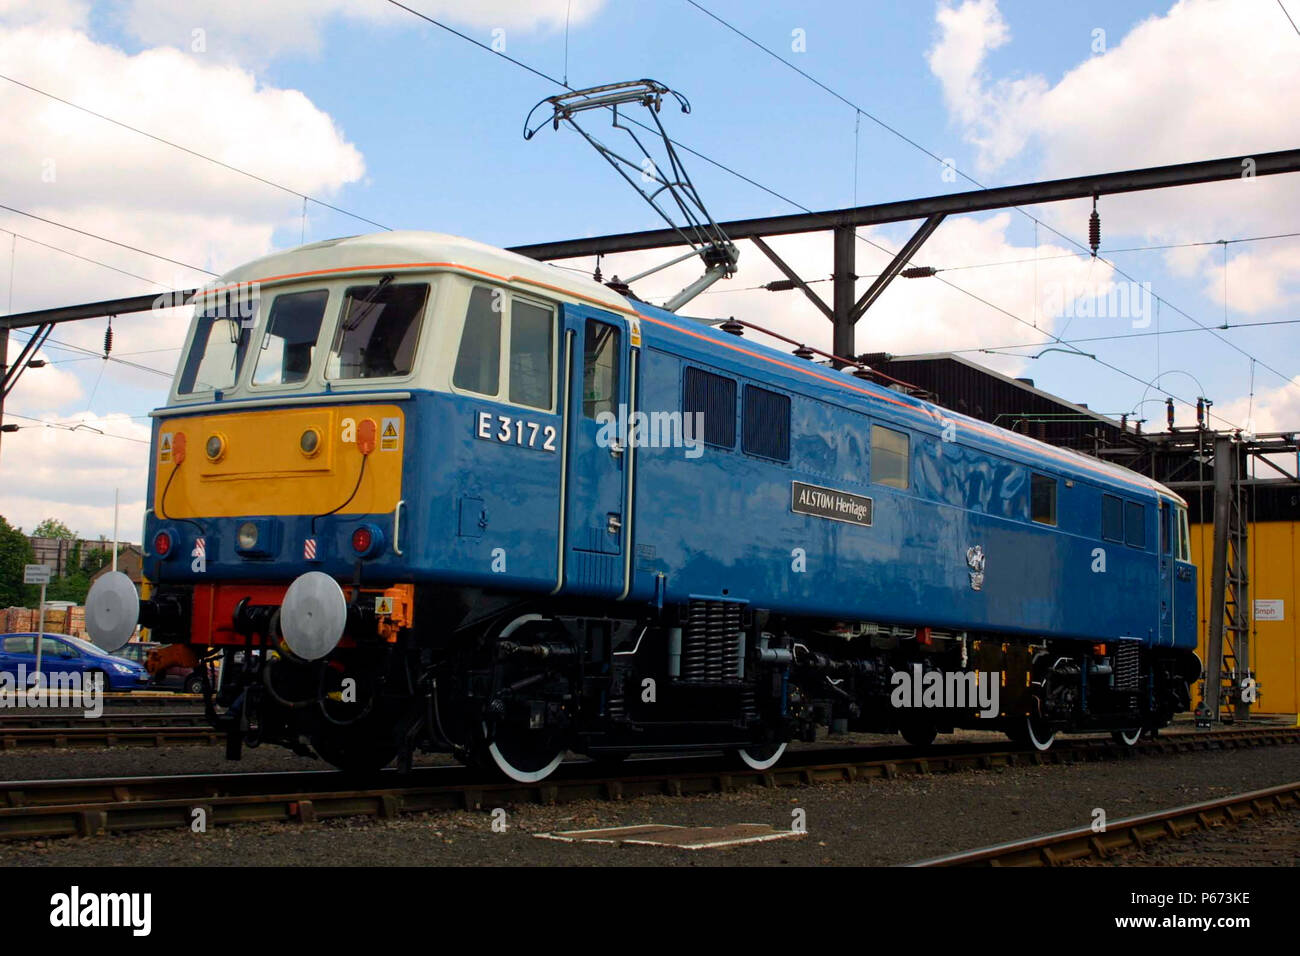 Alstom Heritage number E3172 at Wembley Depot. - Stock Image